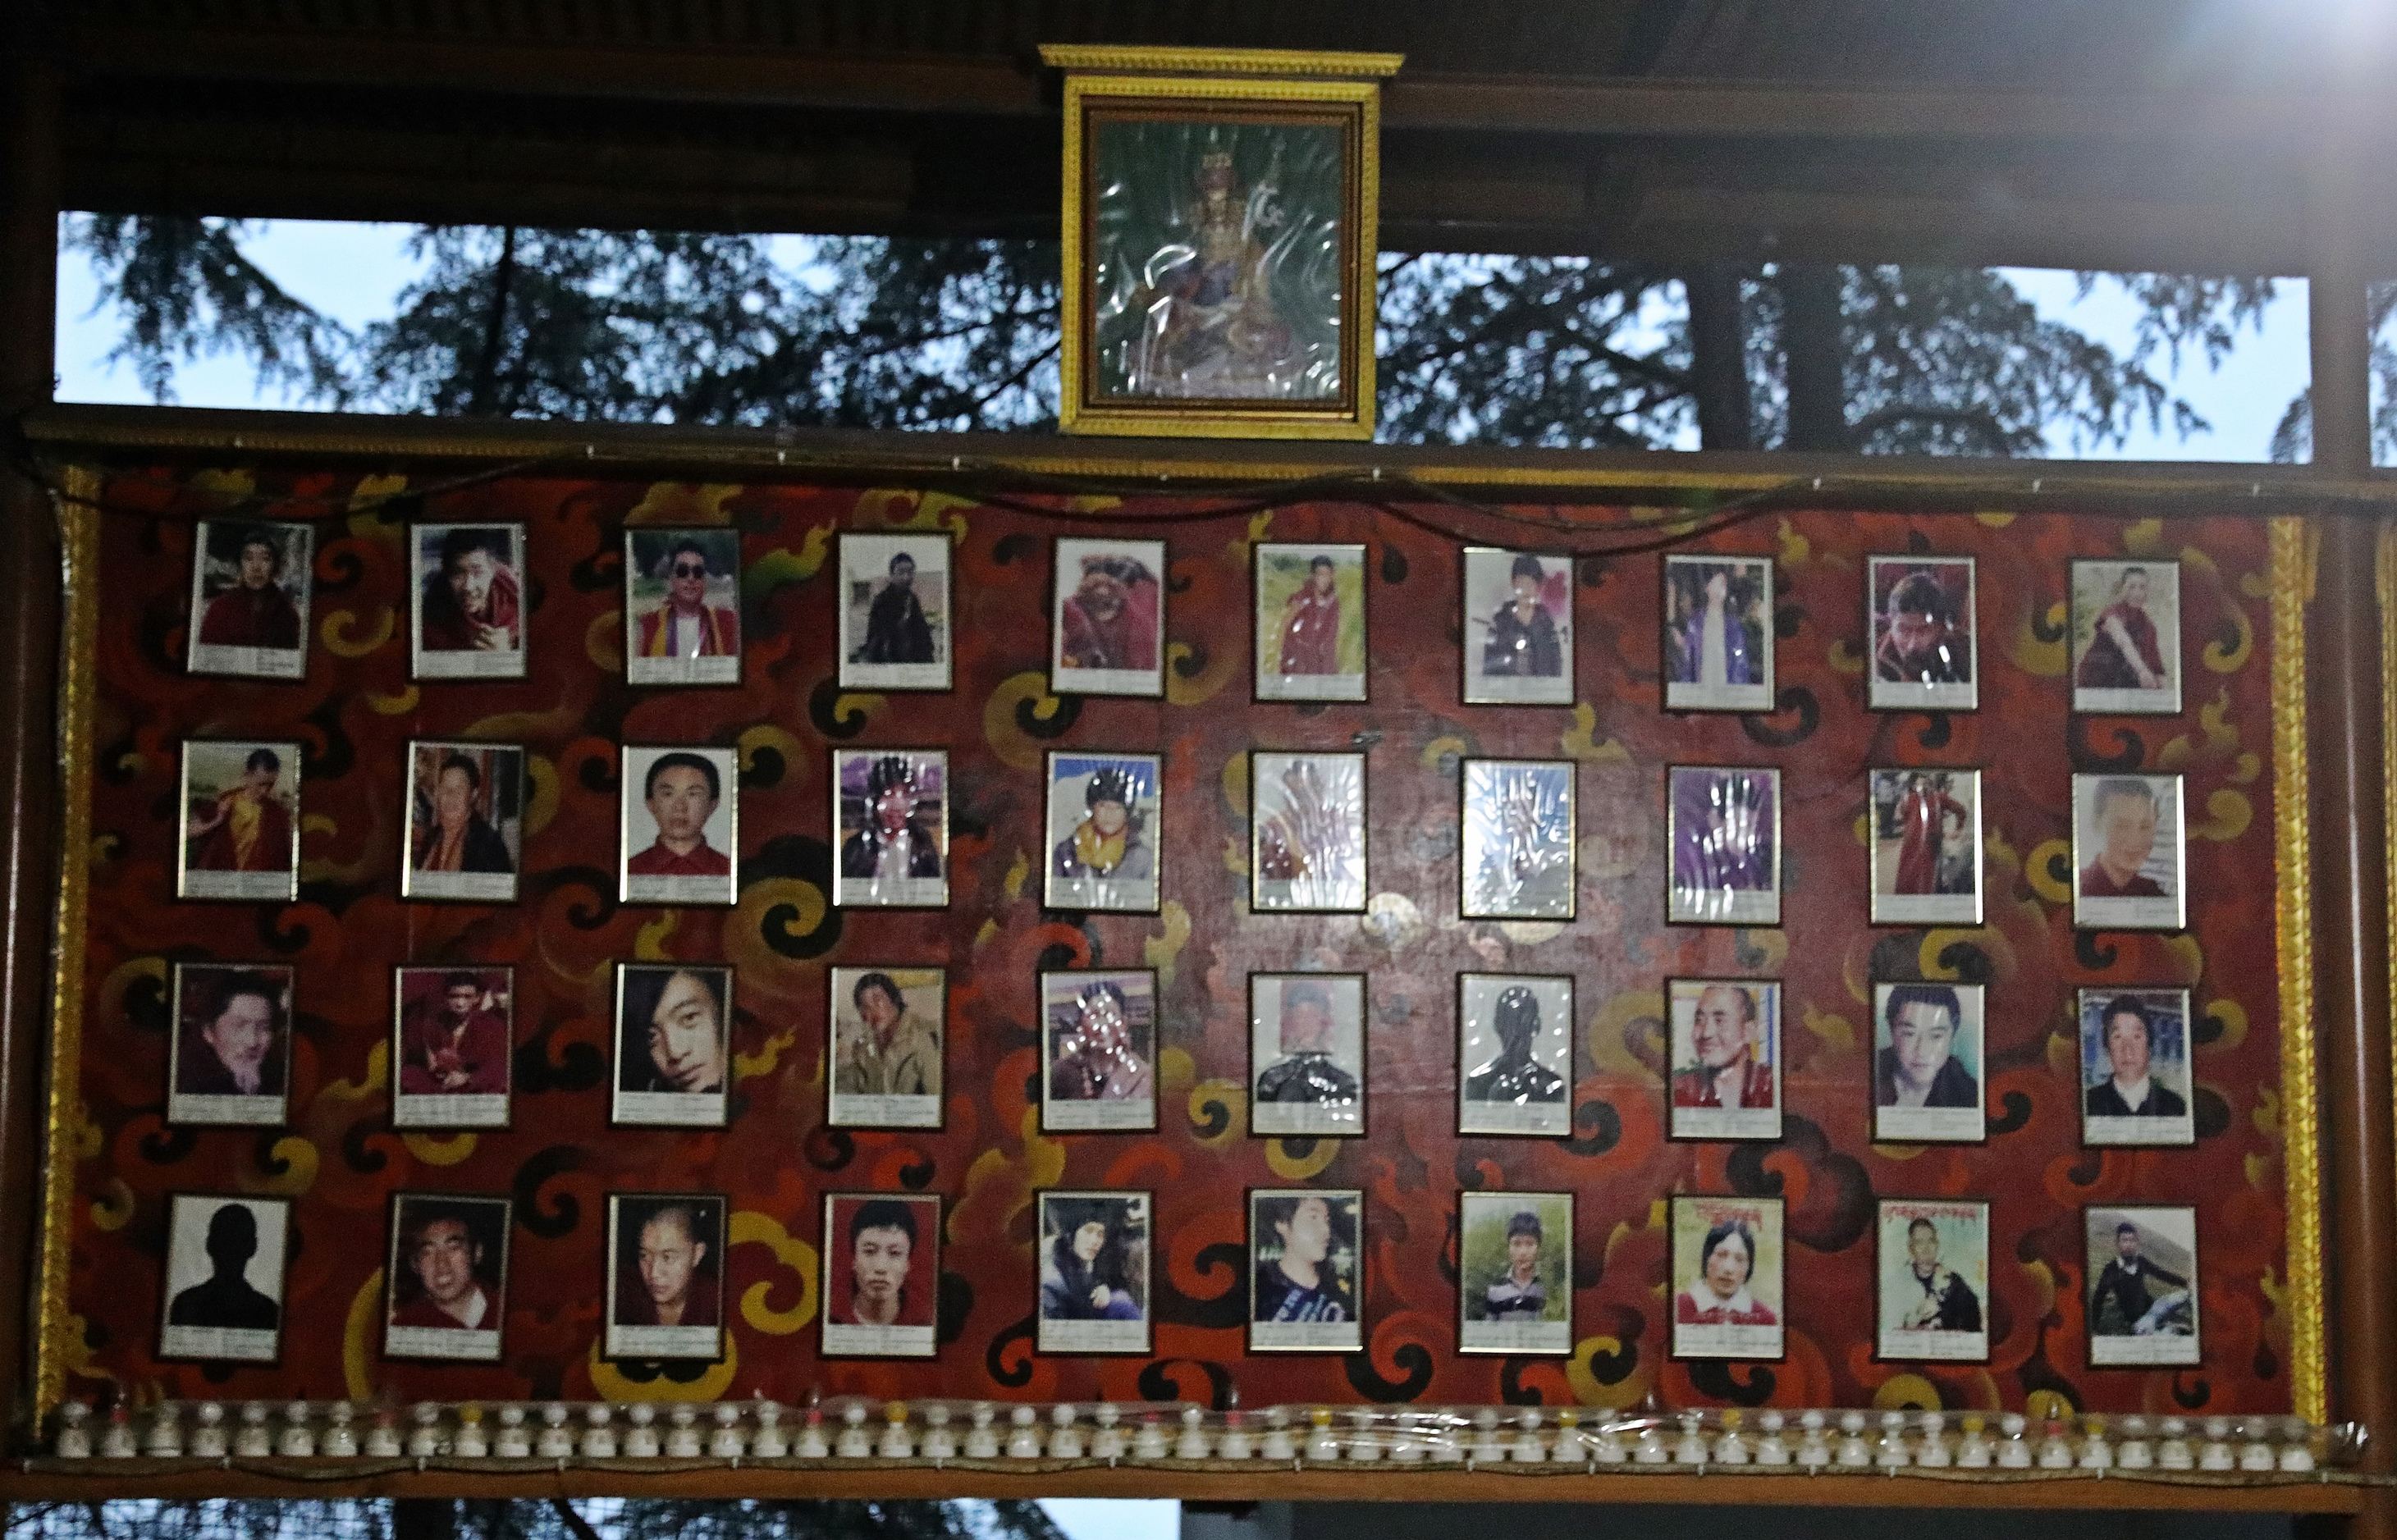 Photos of TIbetans who self-immolated